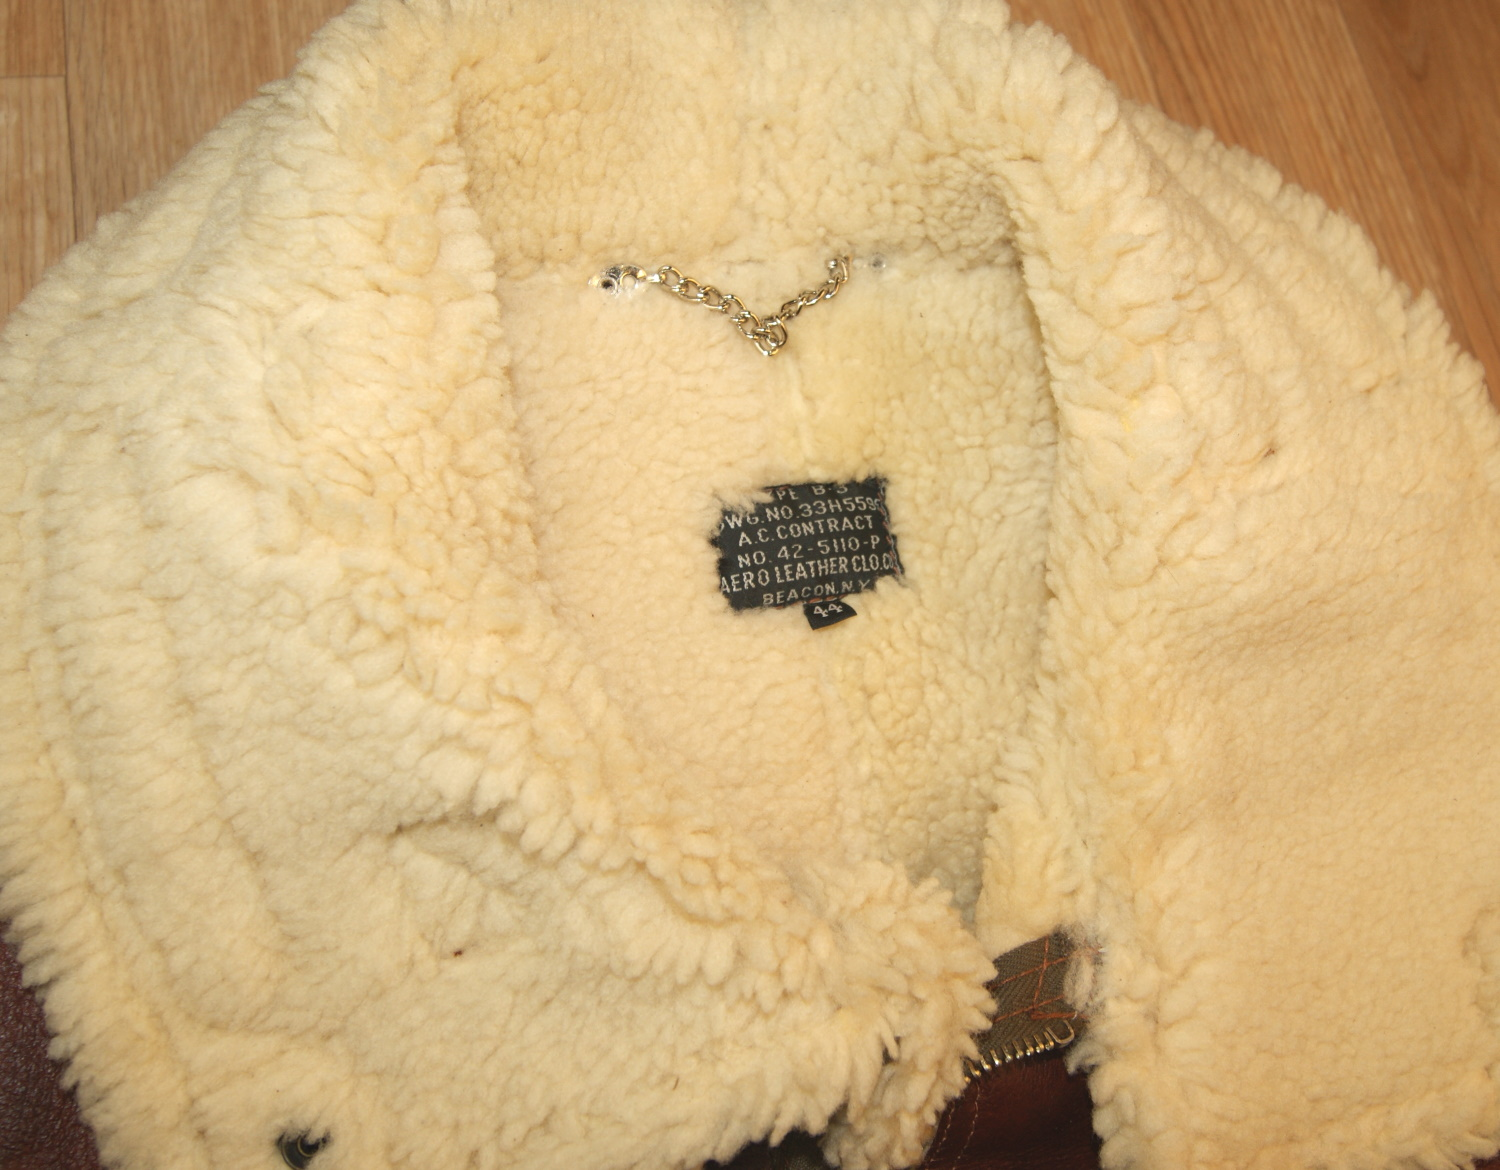 Aero B-3 Redskin 15mm thinner shearling collar.jpg